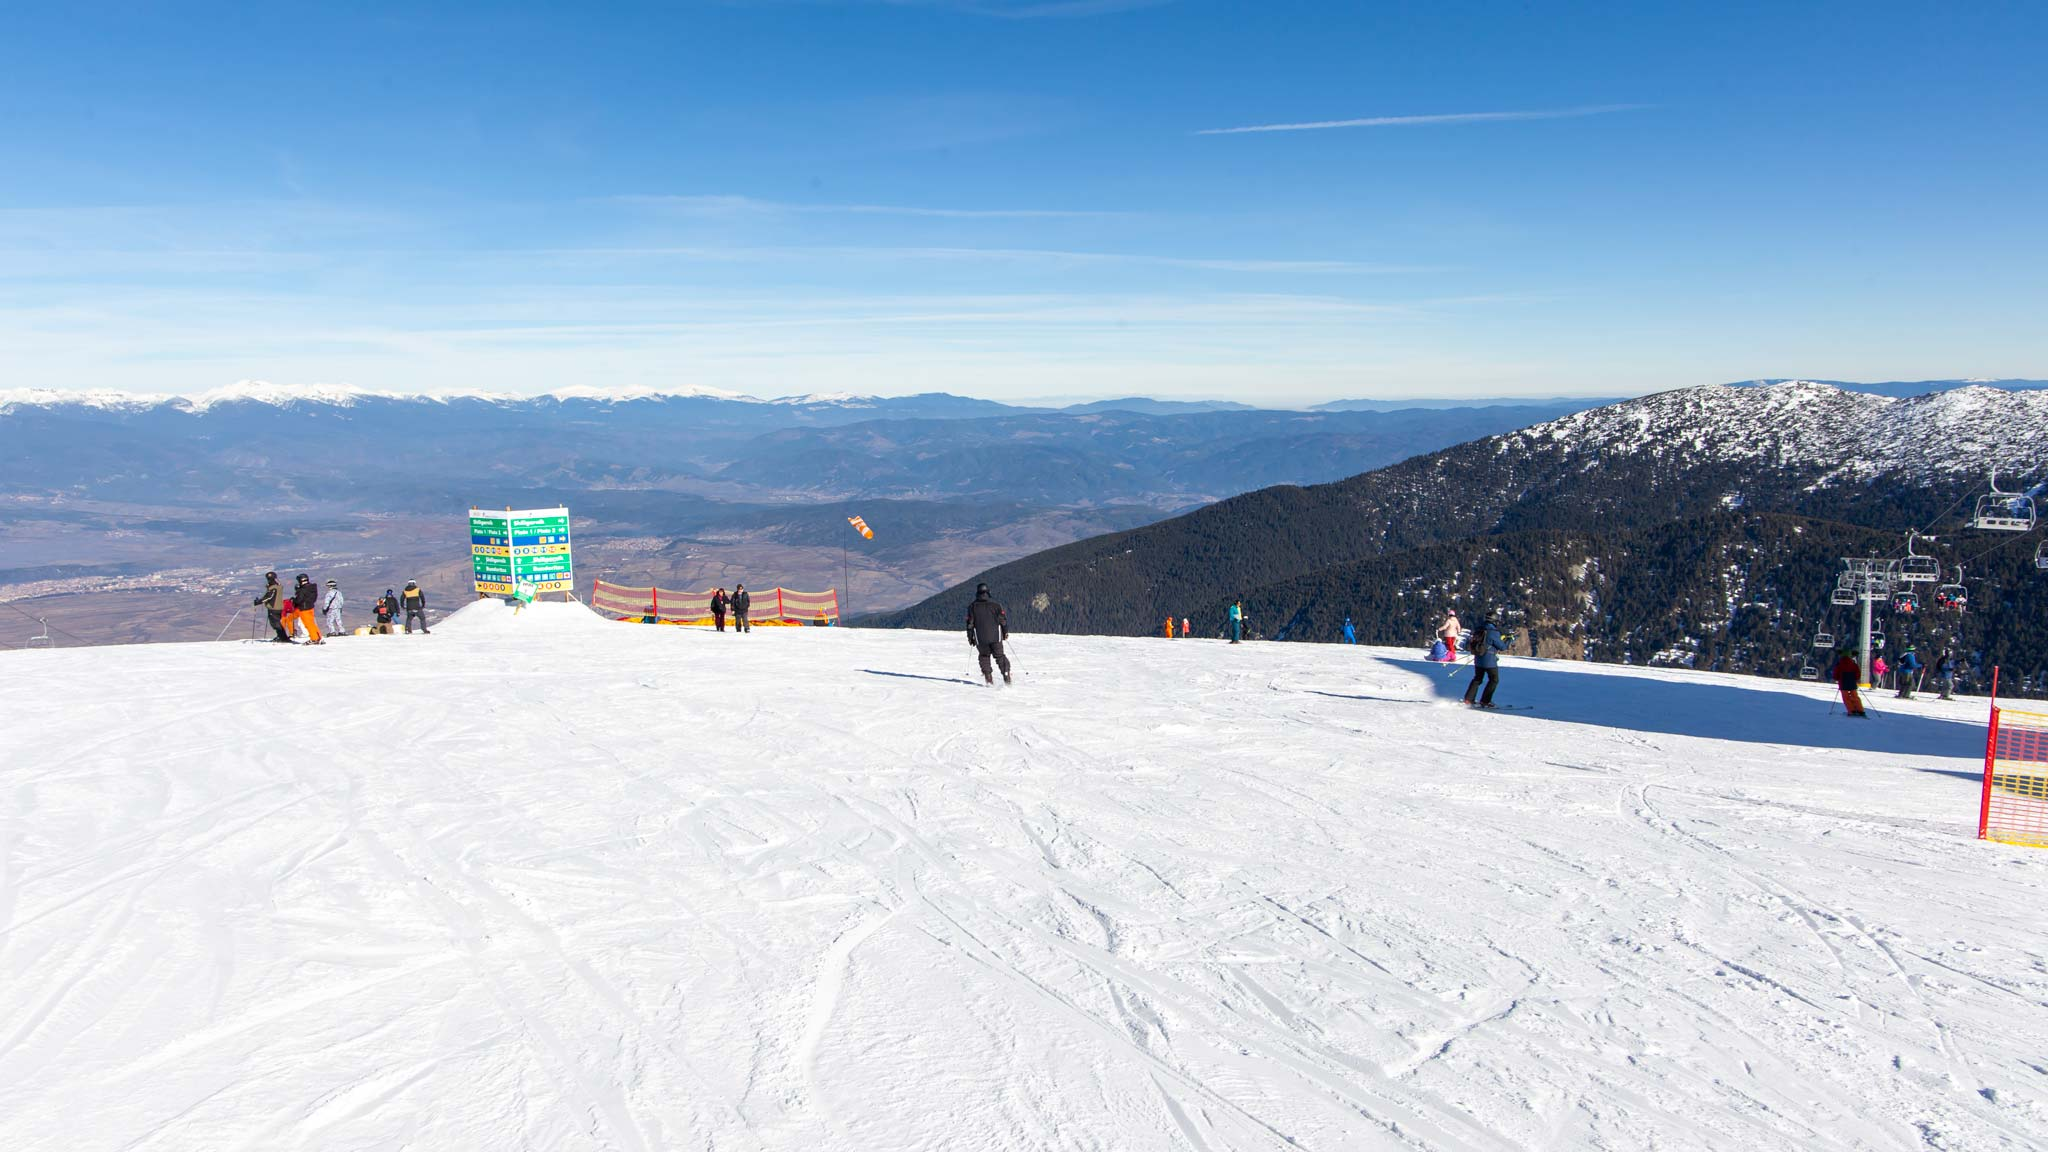 From the top of the mountain at Bansko Ski Resort